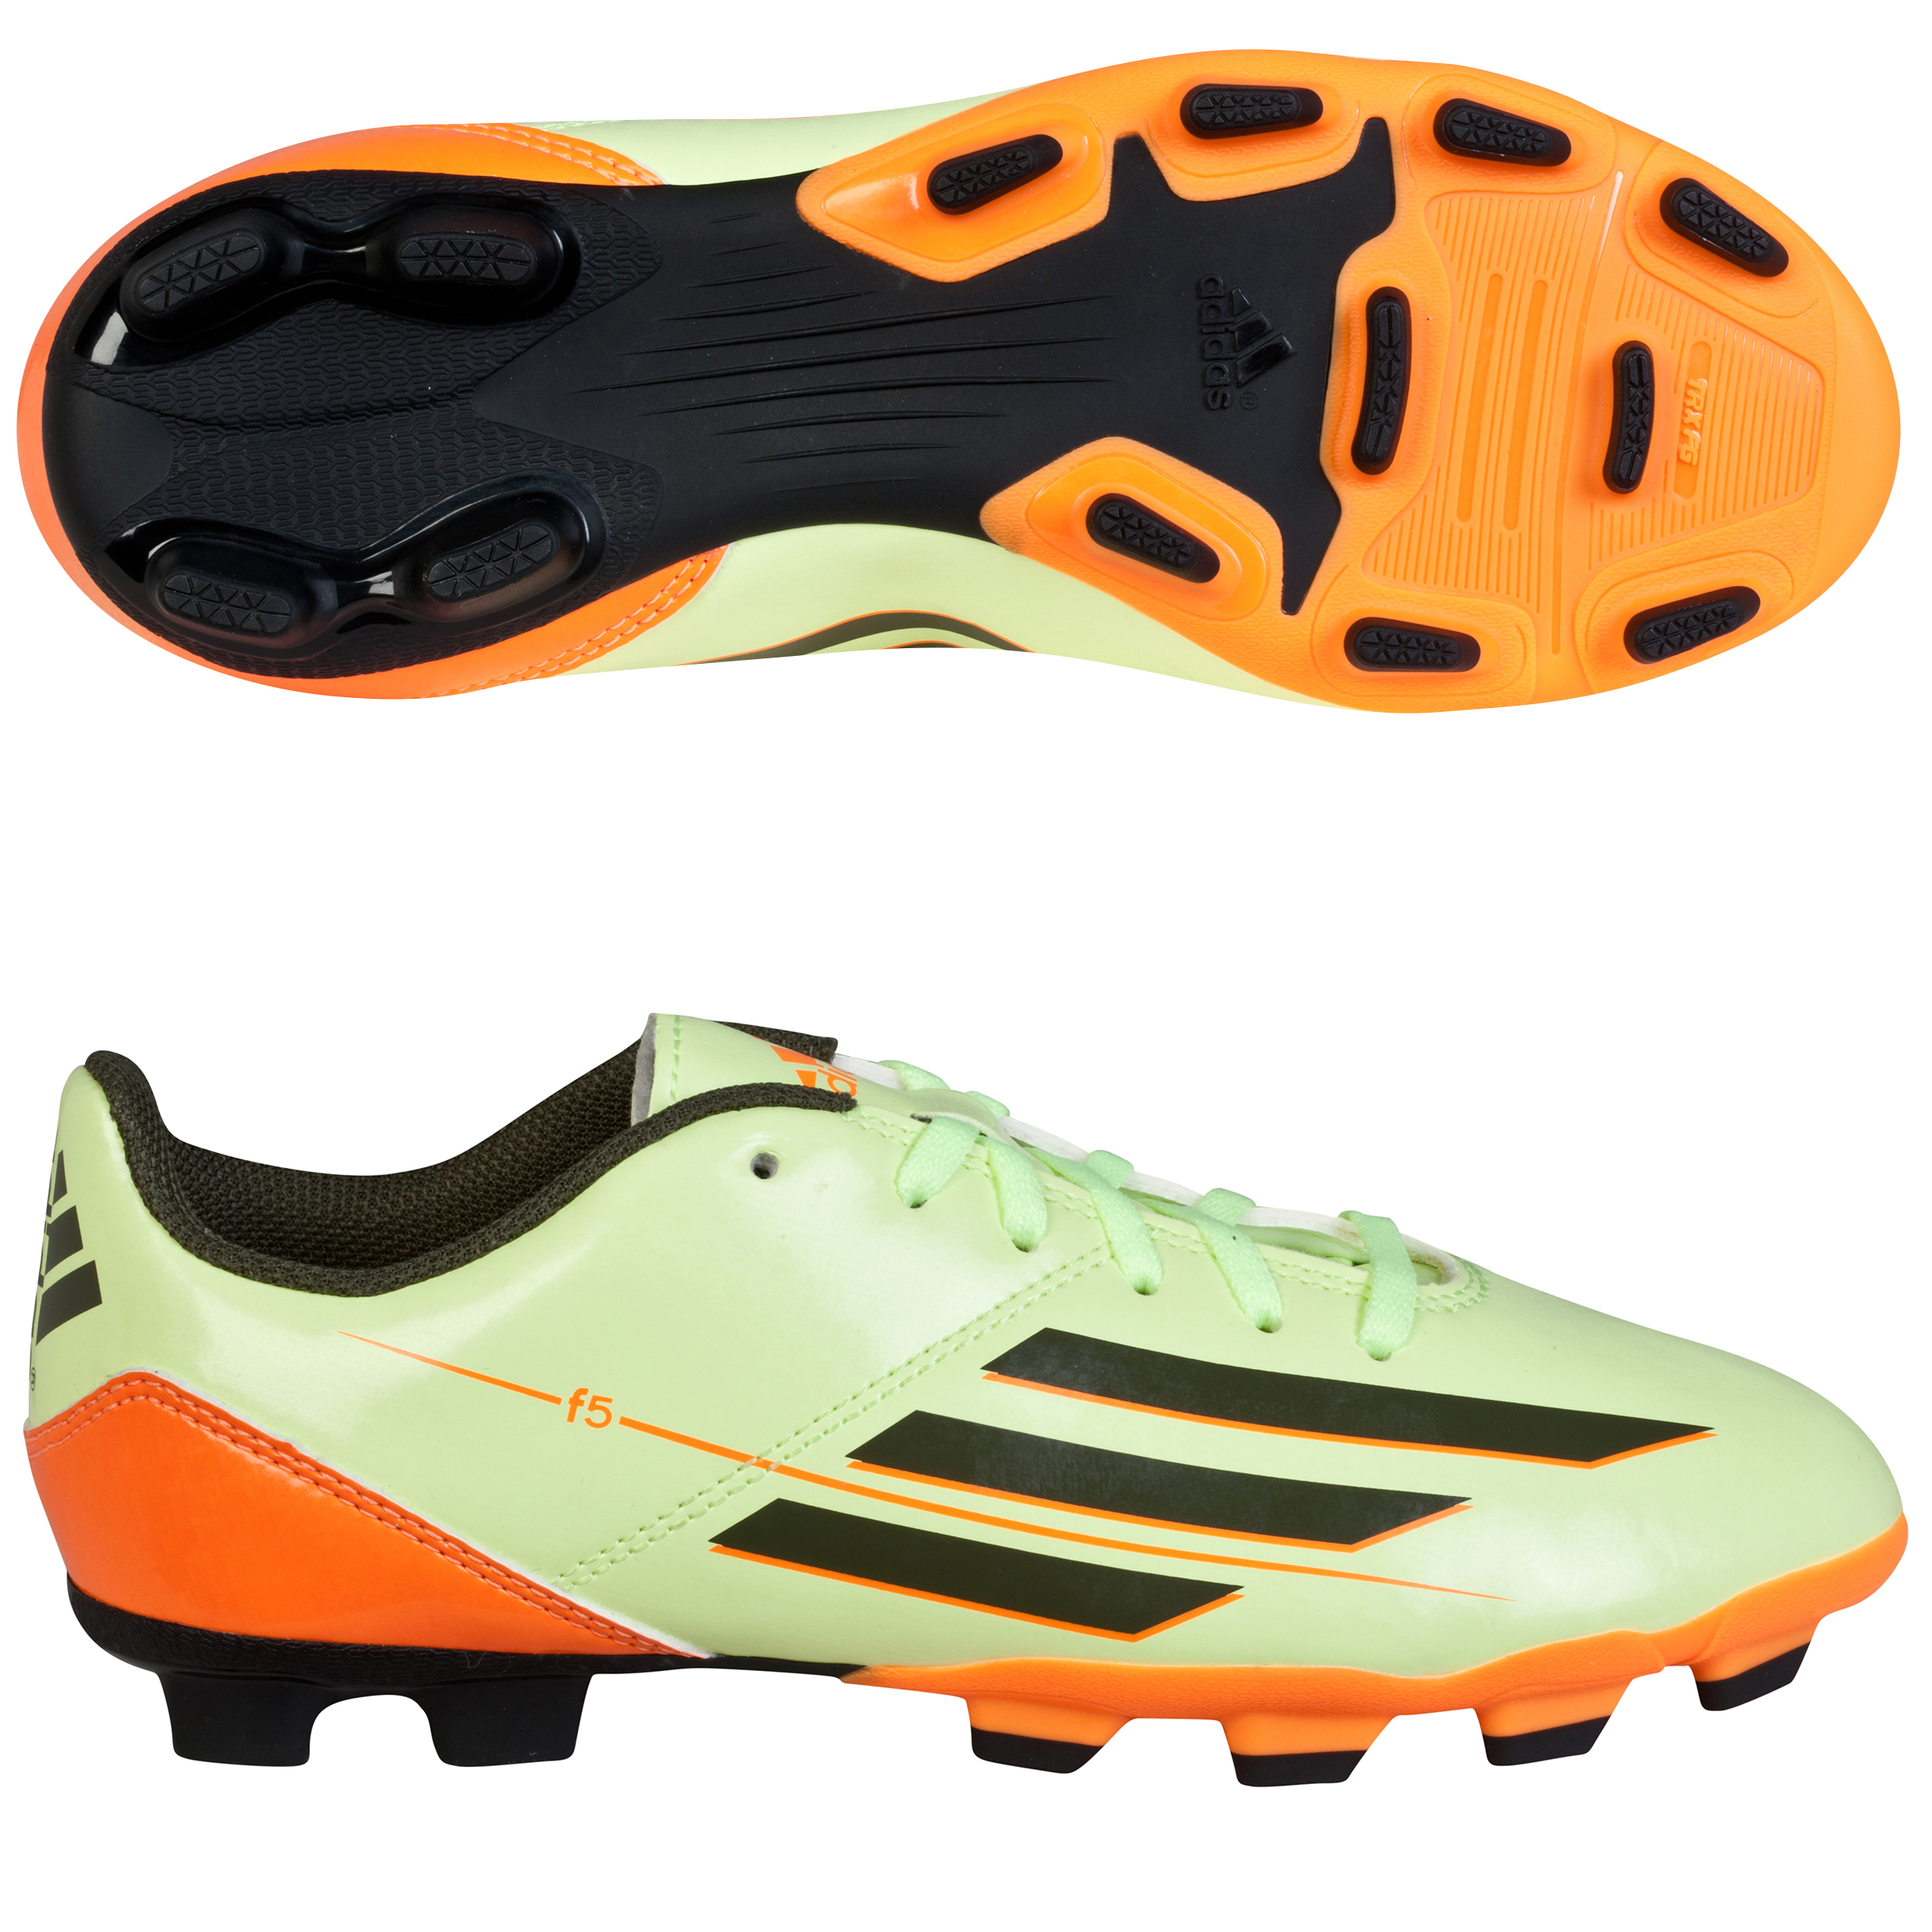 adidas F5 TRX Firm Ground Football Boots Kids Yellow